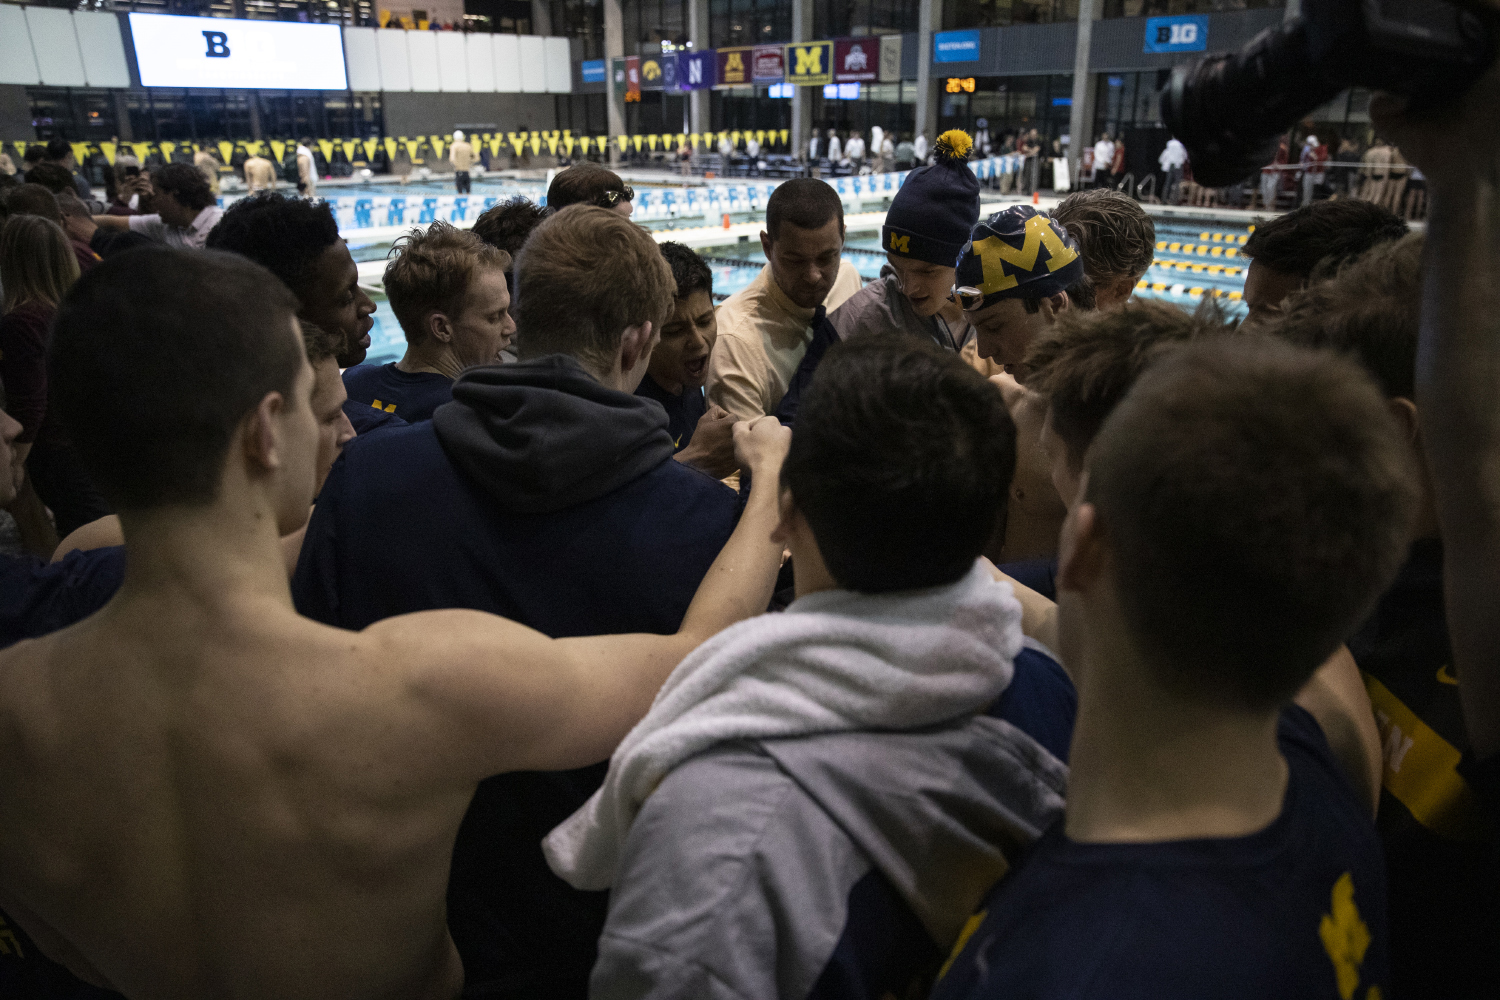 The+University+of+Michigan+gathers+together+before+the+second+day+of+the+2019+Big+Ten+Men%27s+Swimming+and+Diving+Championships+at+the+CRWC+on+Thursday%2C+February+28%2C+2019.+